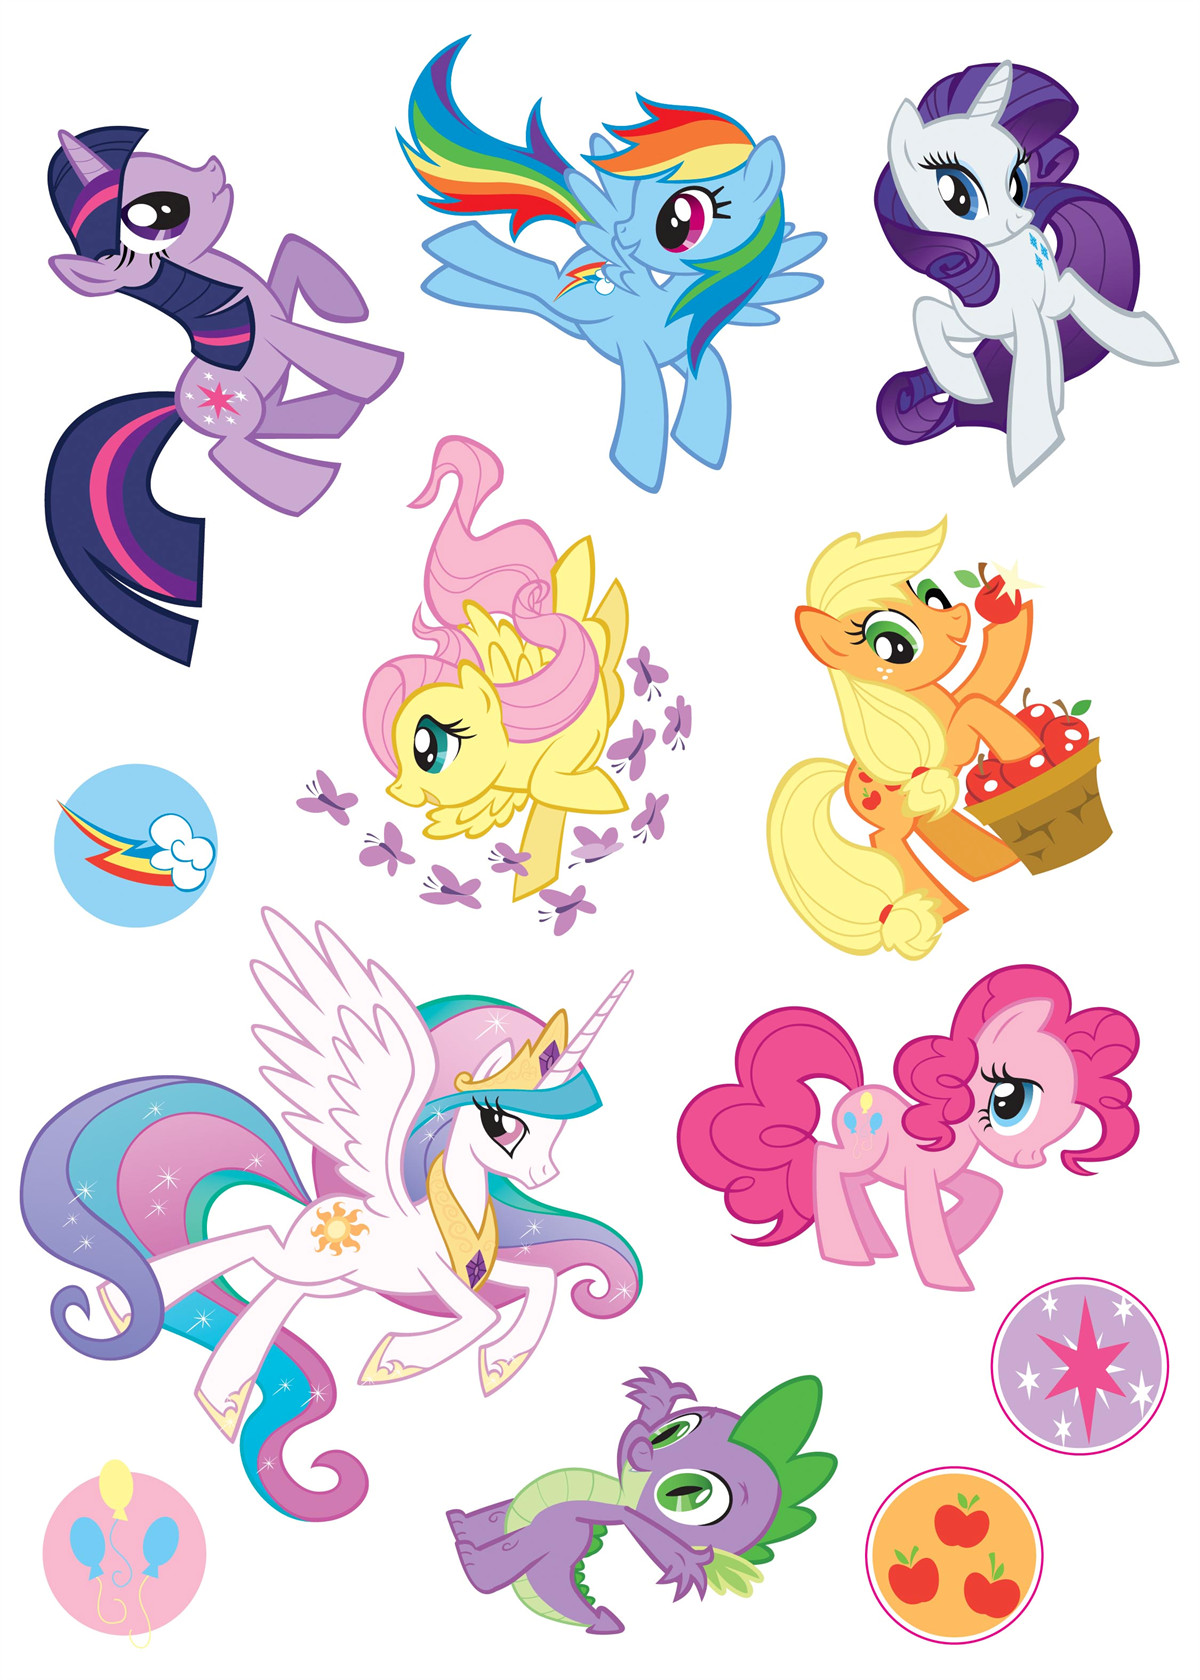 Cutie mark image list salafi images of stars image dune - My little pony cutie mark wallpaper ...